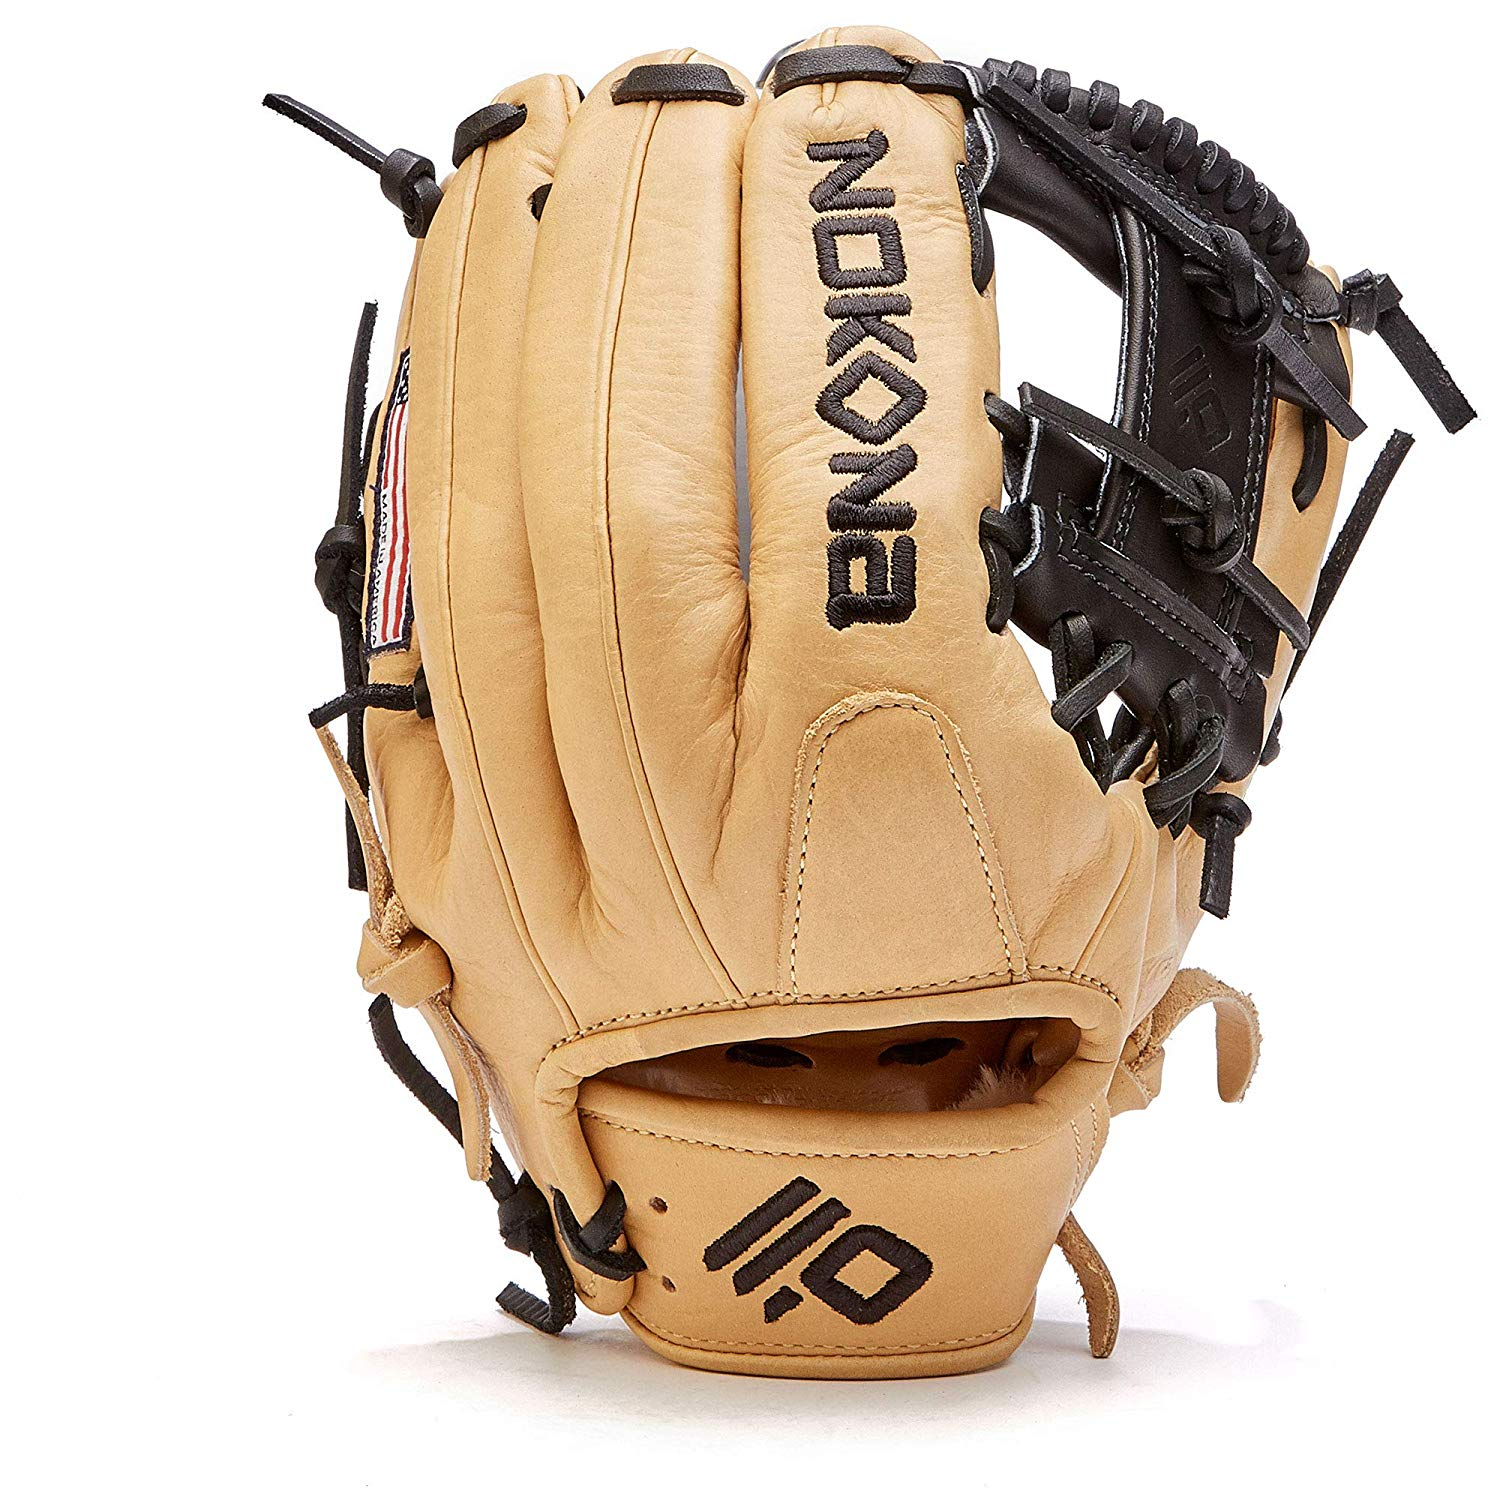 nokona-skn-baseball-glove-11-25-skn-200i-right-hand-throw SKN-200I-RightHandThrow  808808893622 I Web Lightweight and highly structured Some player break-in required Manufacturers